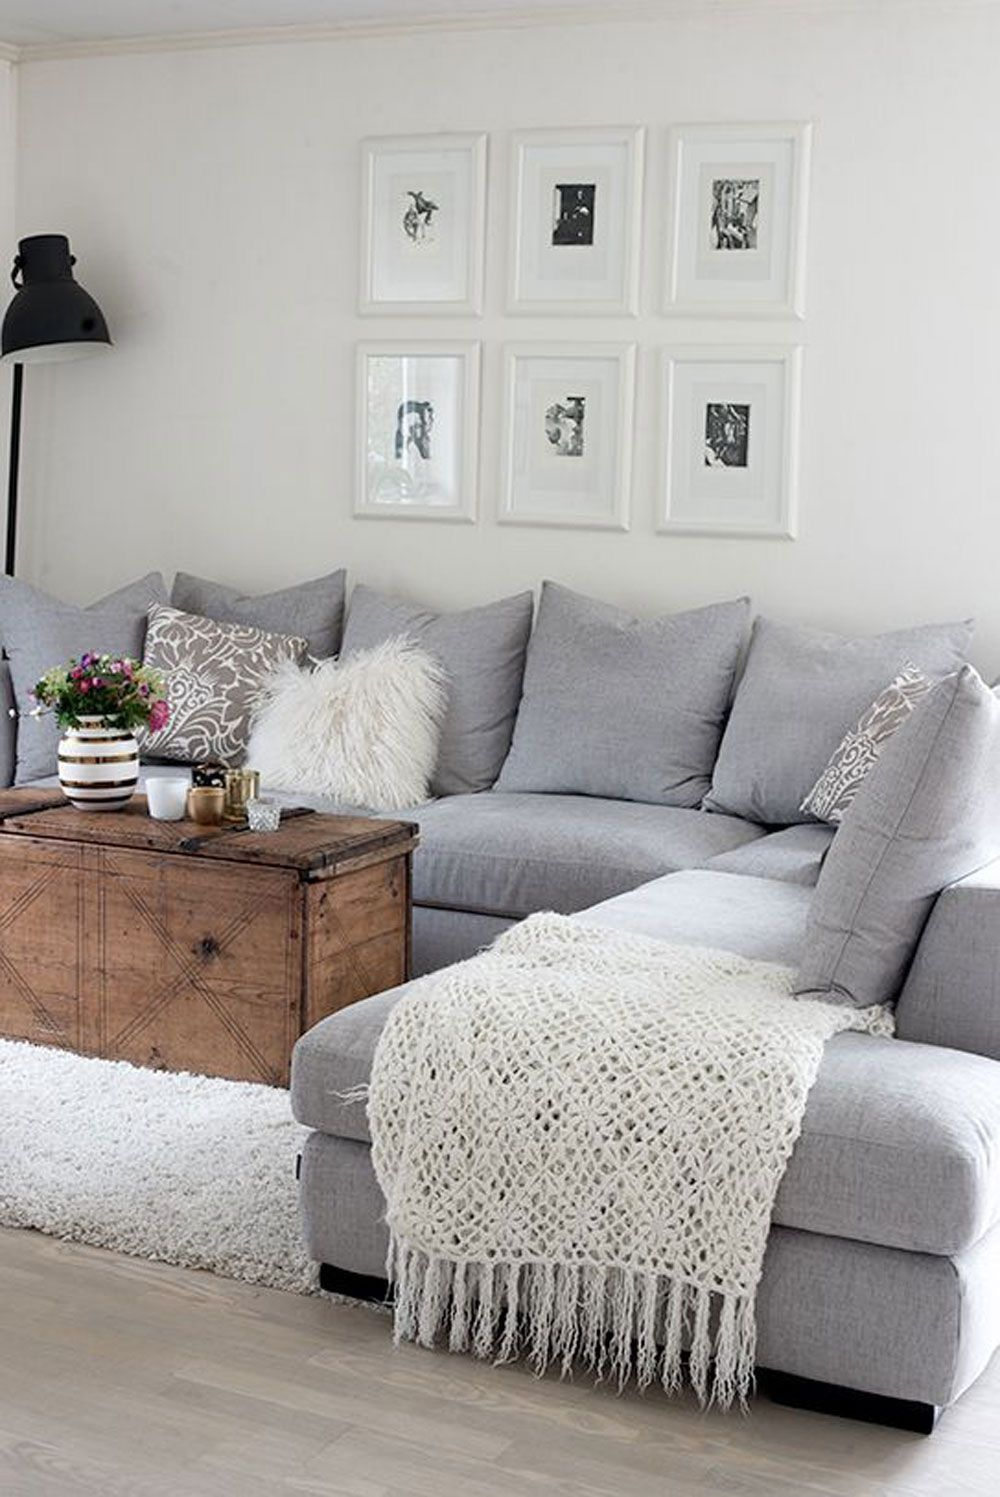 Living Room : Family Room : Den l white walls, gray sofa. Simplicity ...